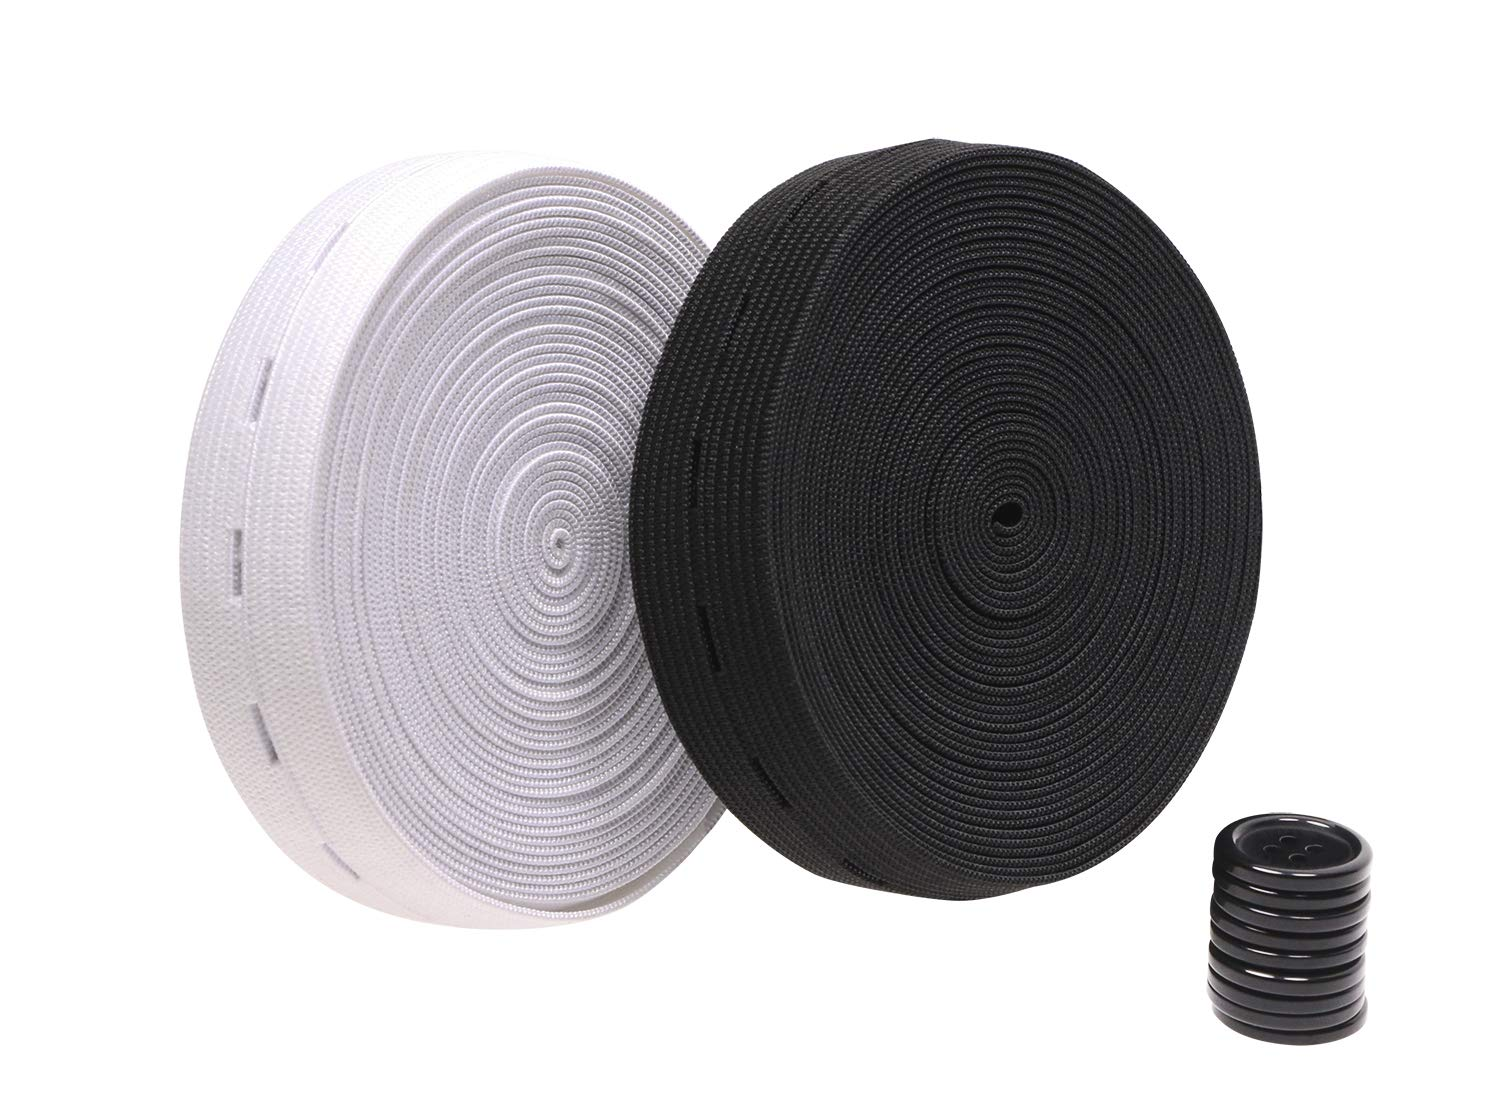 NBEADS 2 Rolls 25mm 5.5 Yard//roll Flat Rubber Elastic Band with 40 pcs Resin Buttons Springy Stretch Knitting Sewing Elastic Spool Elastic Bands Black and White